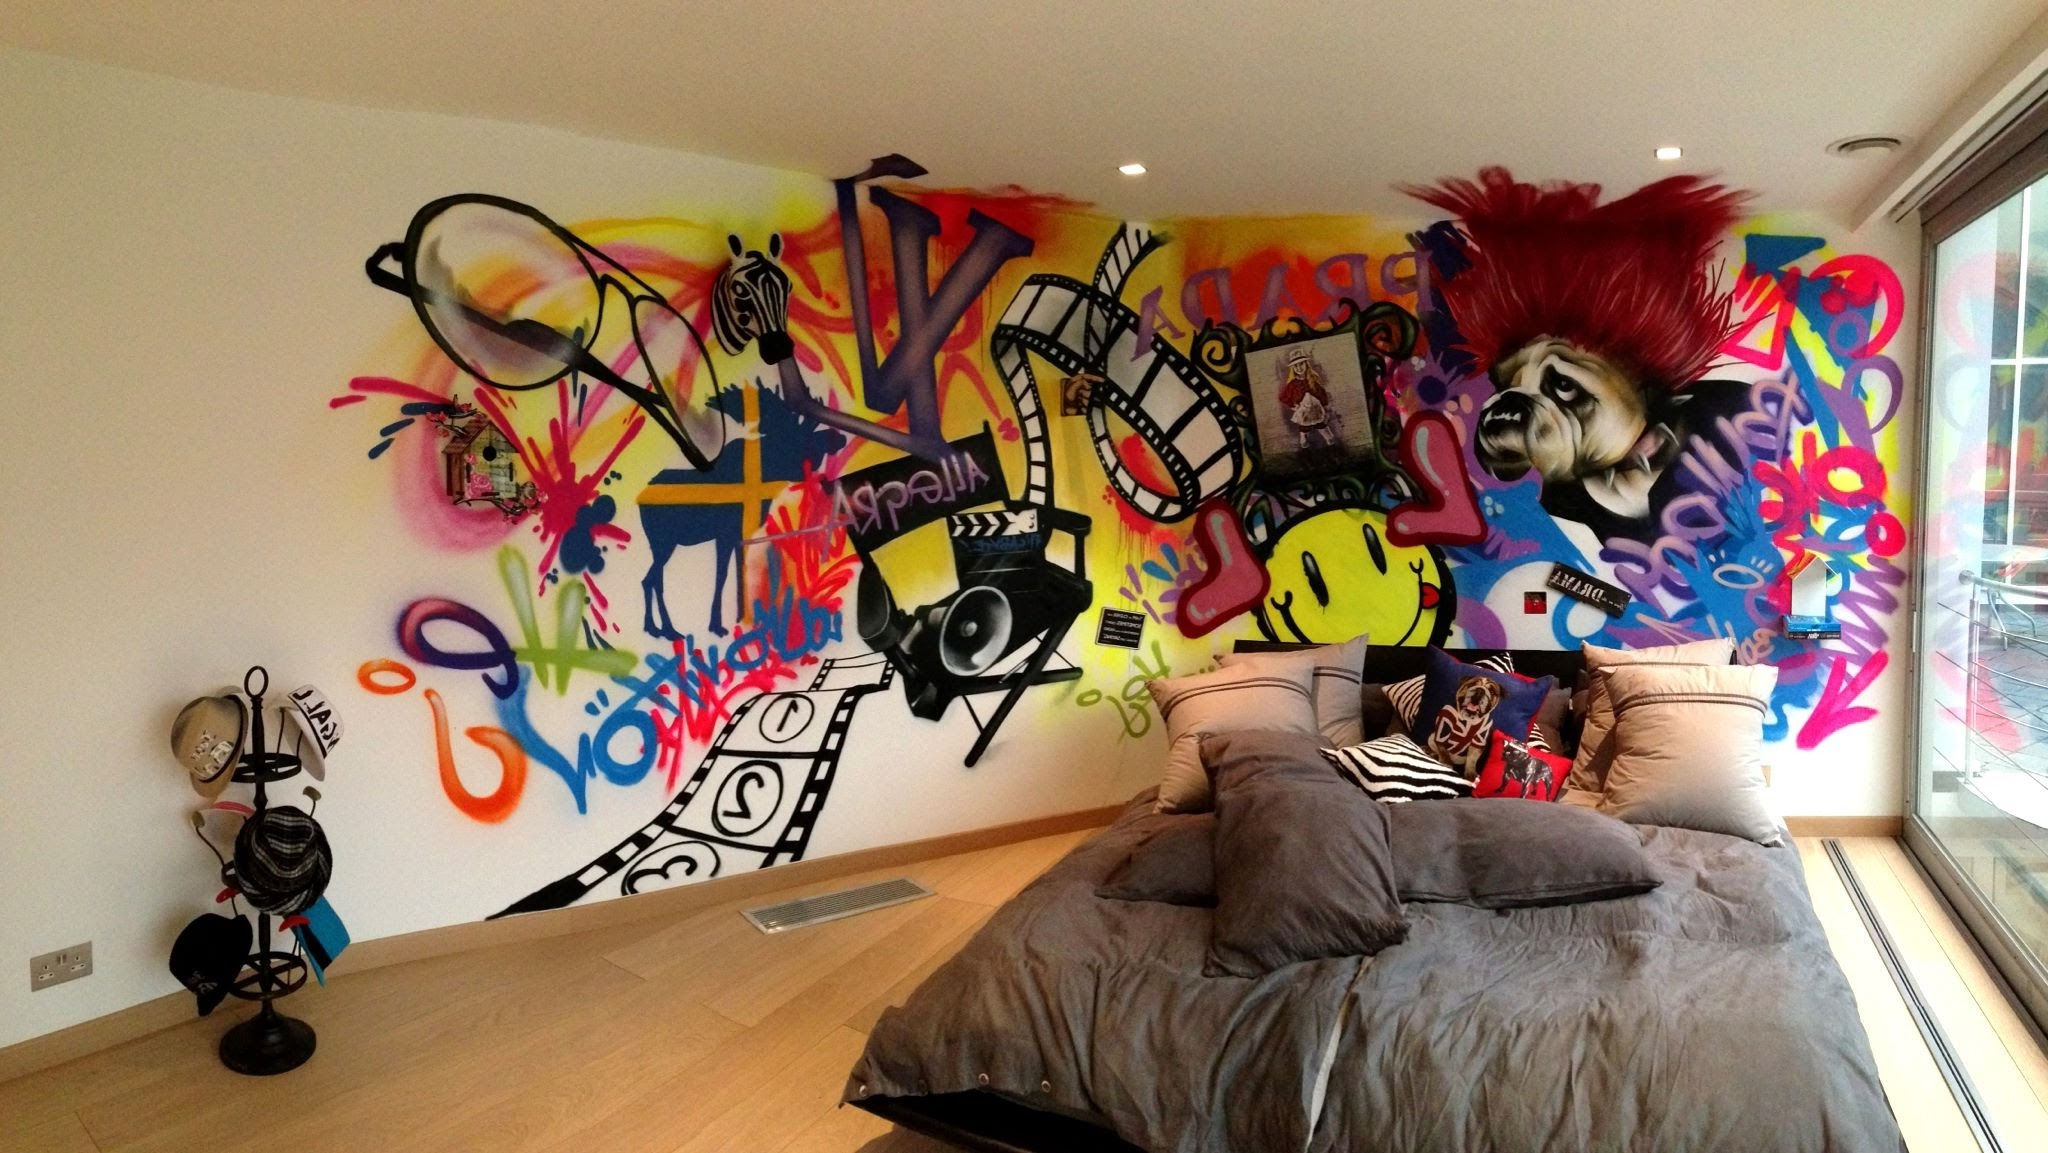 Cool Wall Art With Regard To Well Known Wall Art Graffiti For Young Bedroom With Recessed Lights And Wood (View 13 of 15)